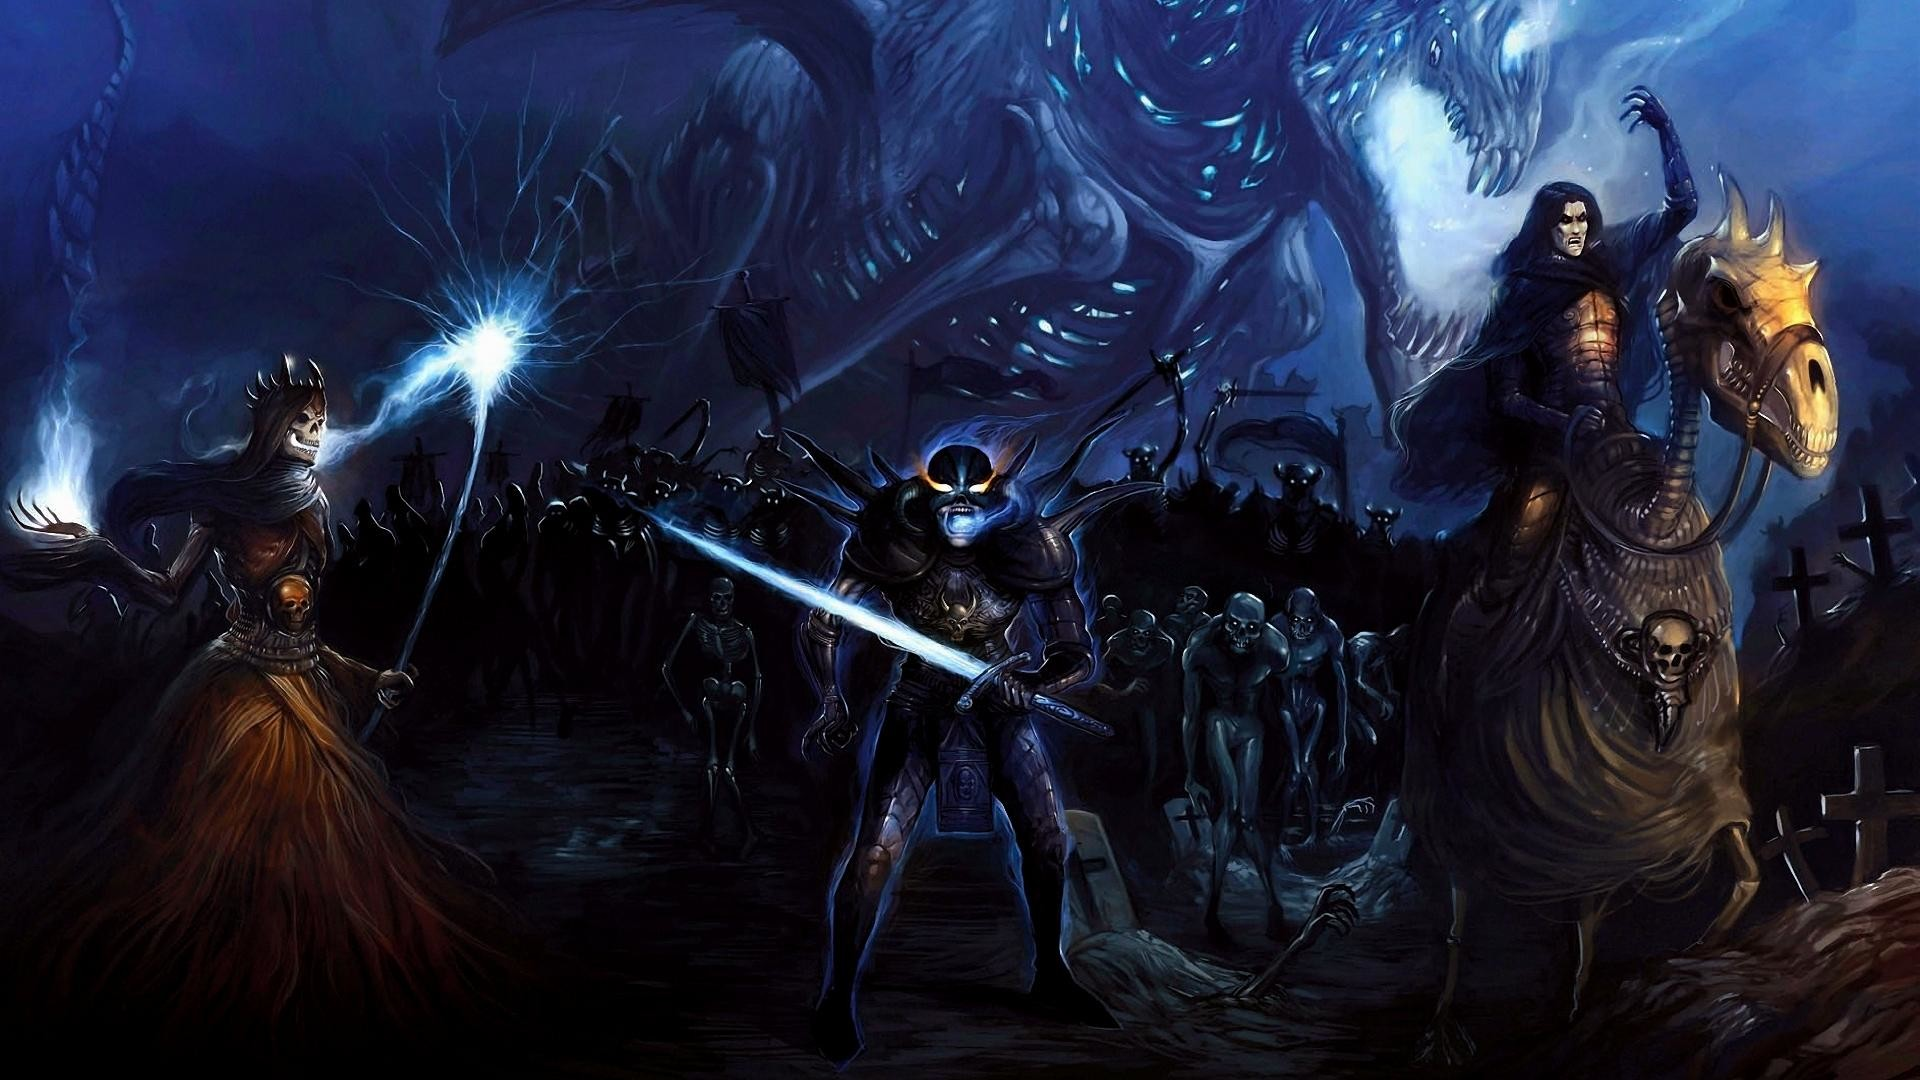 wallpaper.wiki-Dungeons-And-Dragons-Desktop-Images-PIC-